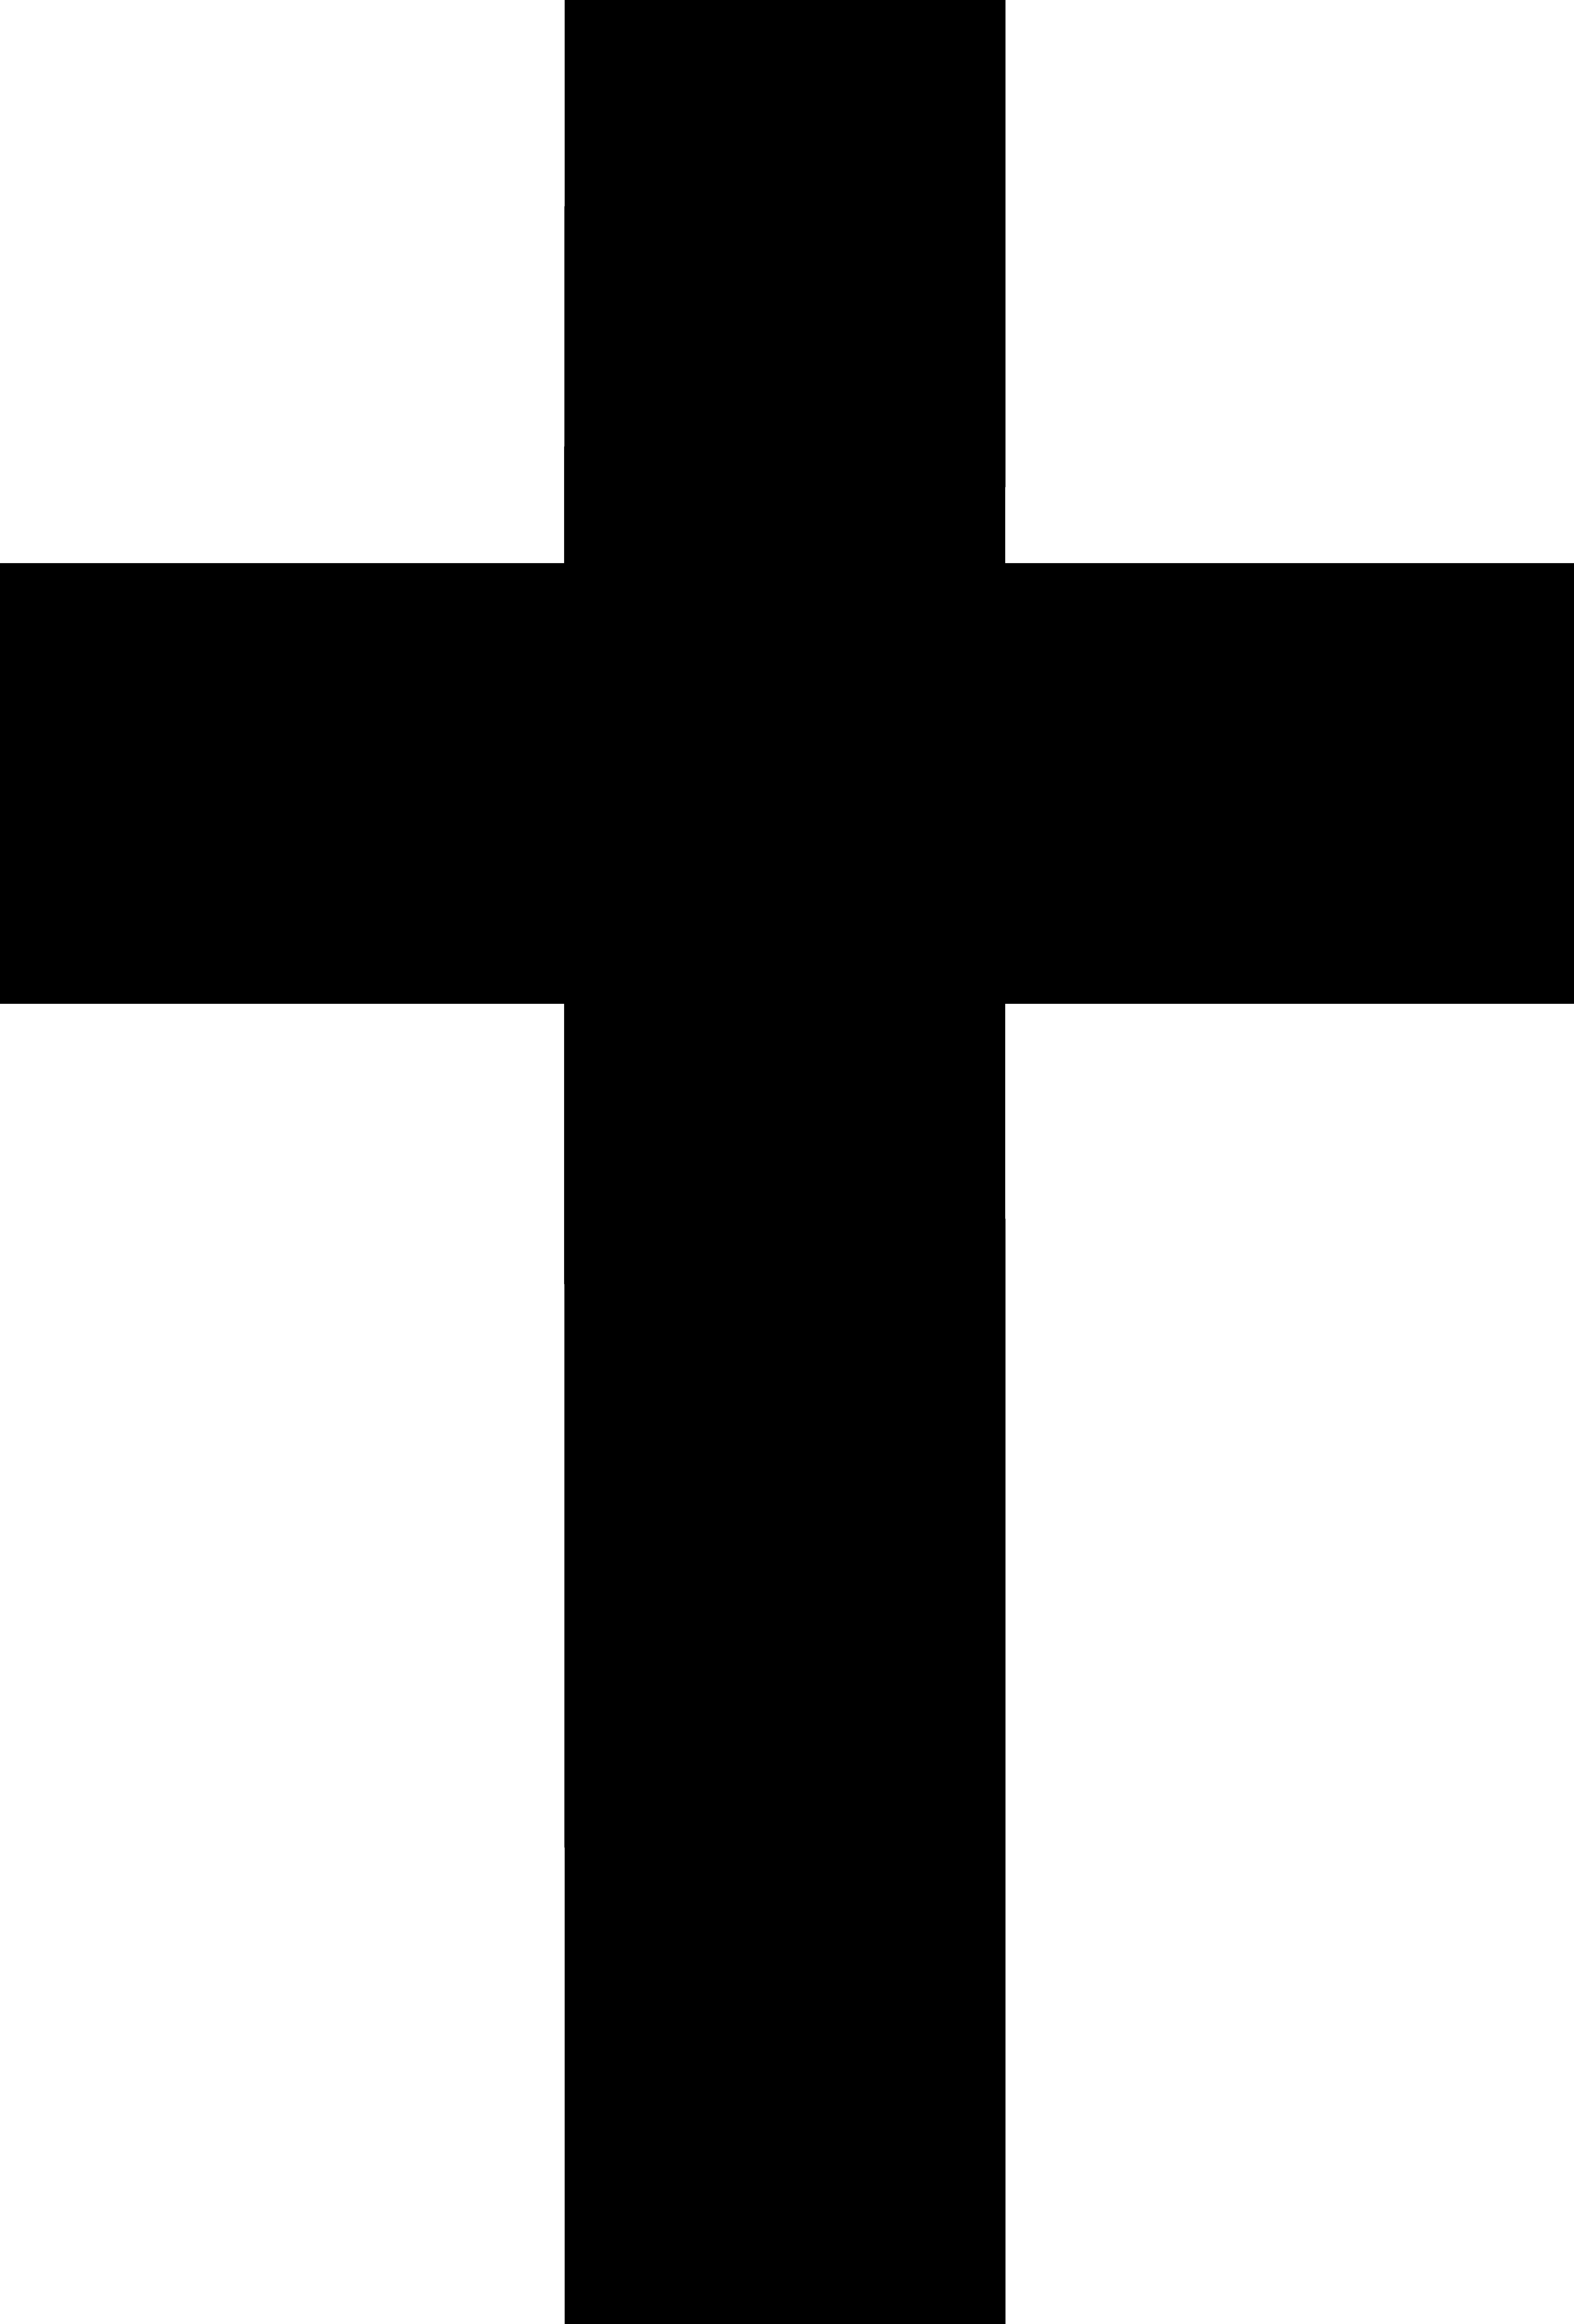 Crucifix clipart christianity. Black christian cross png